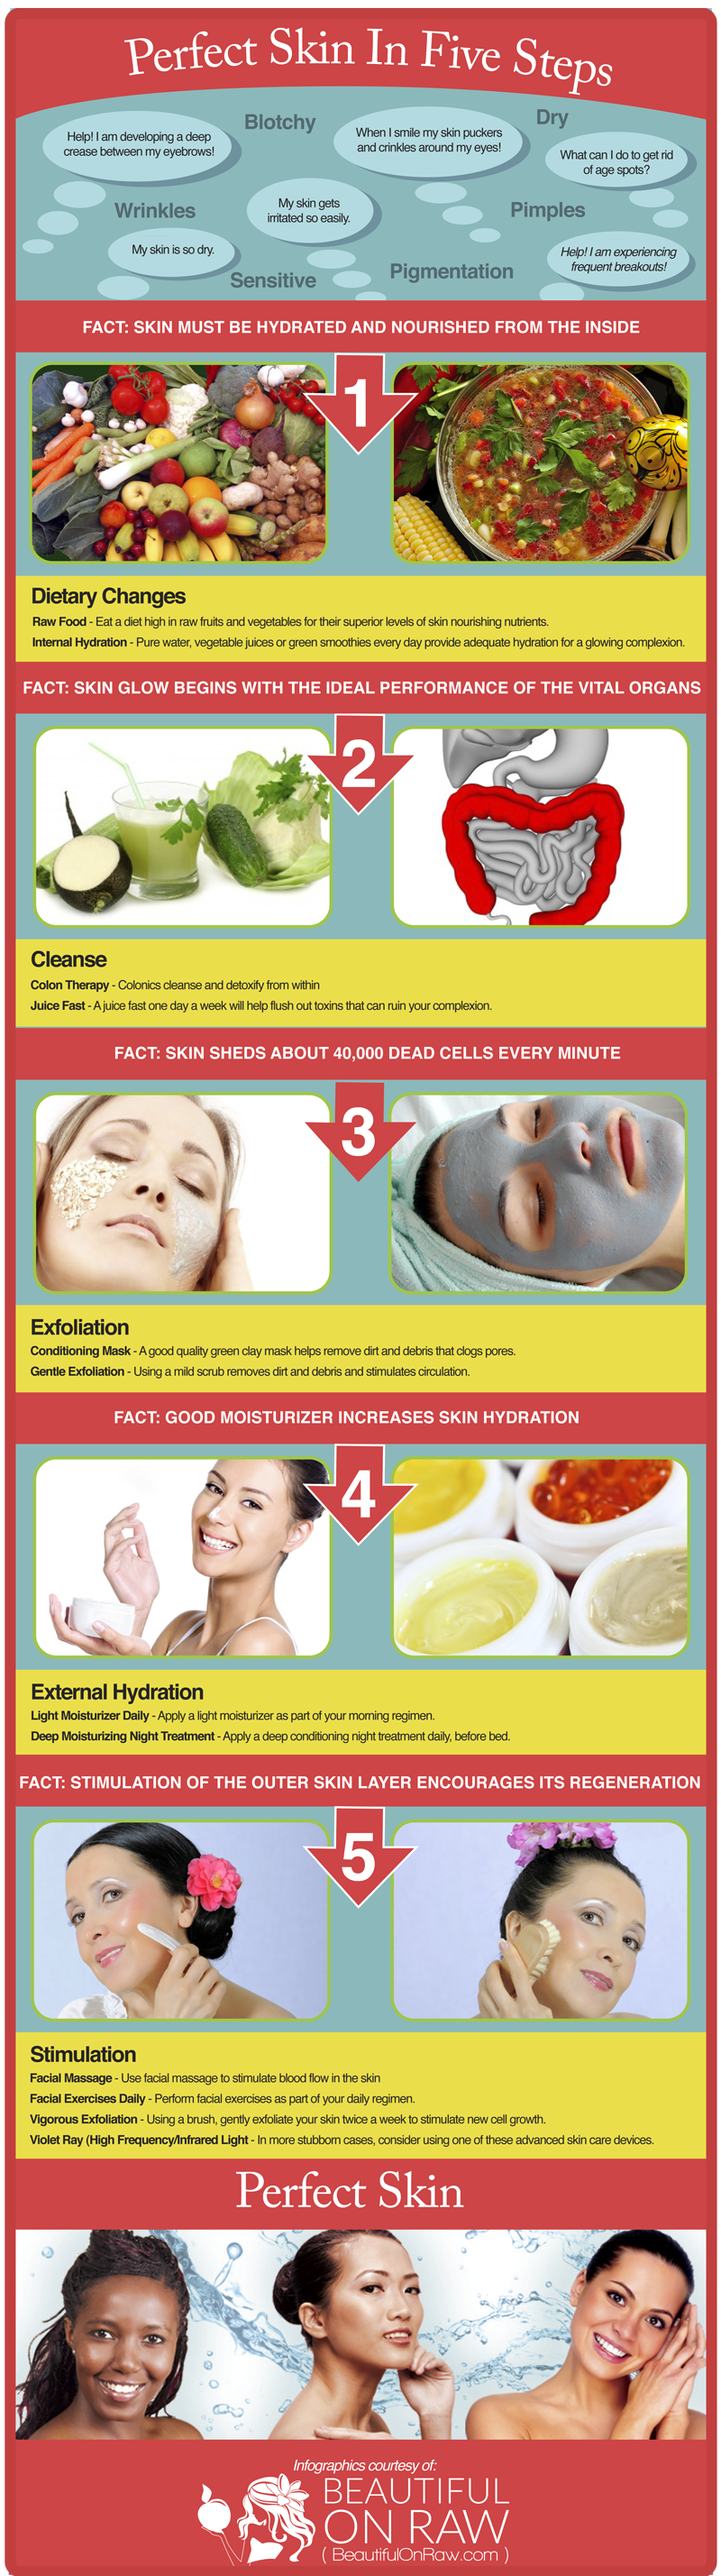 Perfect Skin in Five Steps